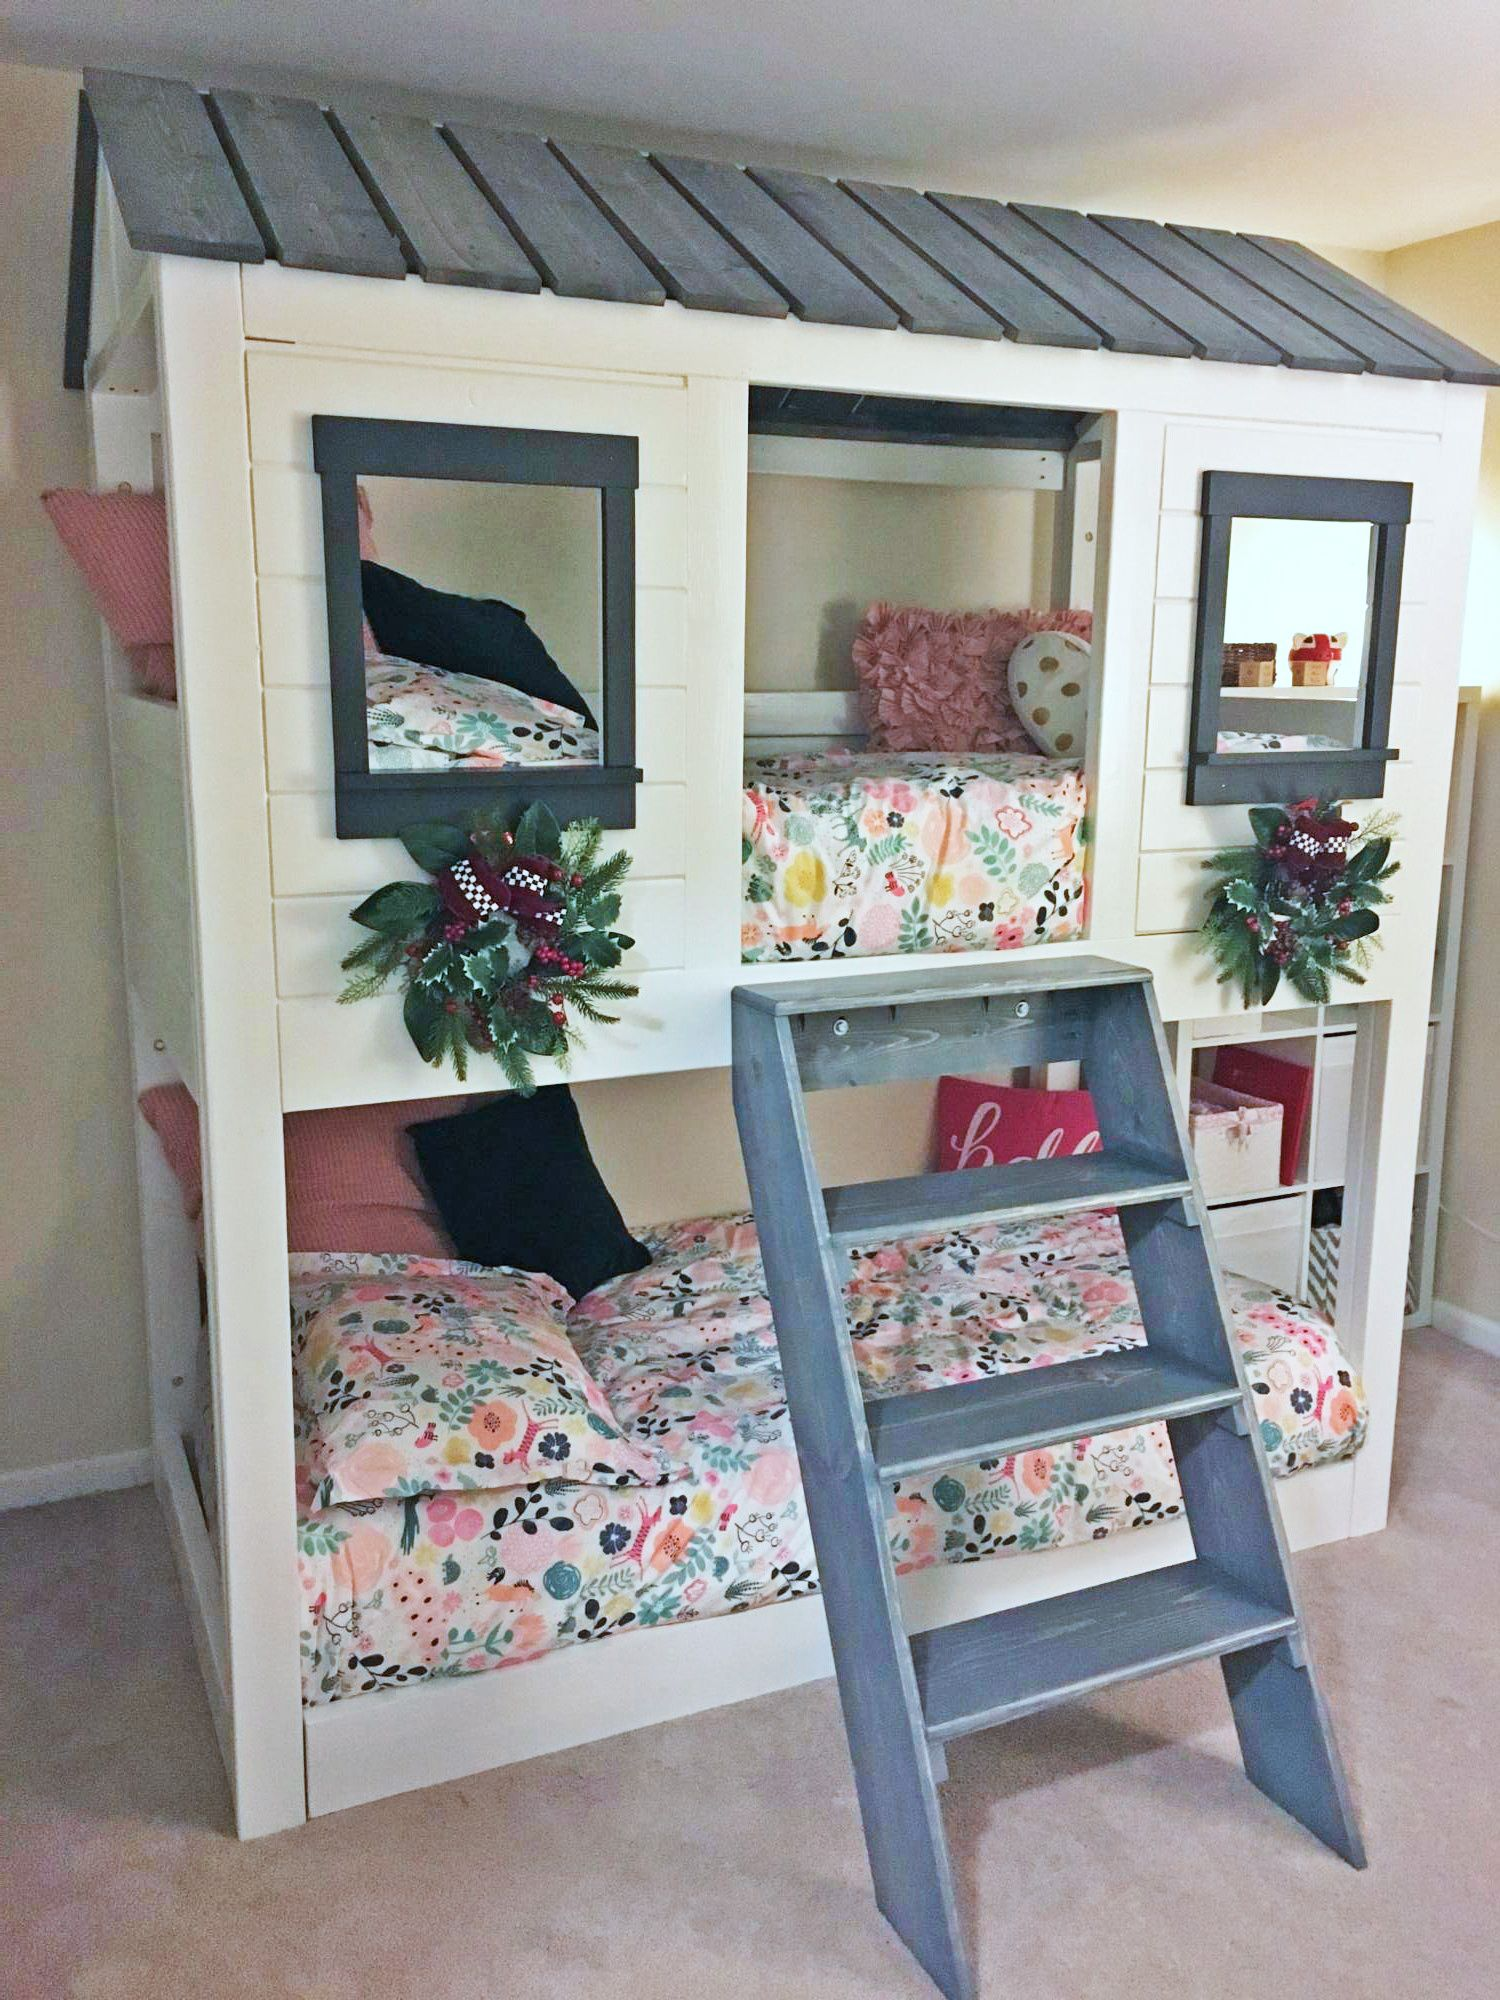 Loft Cabin Bunk Bed Ana White in 2020 Bunk bed plans